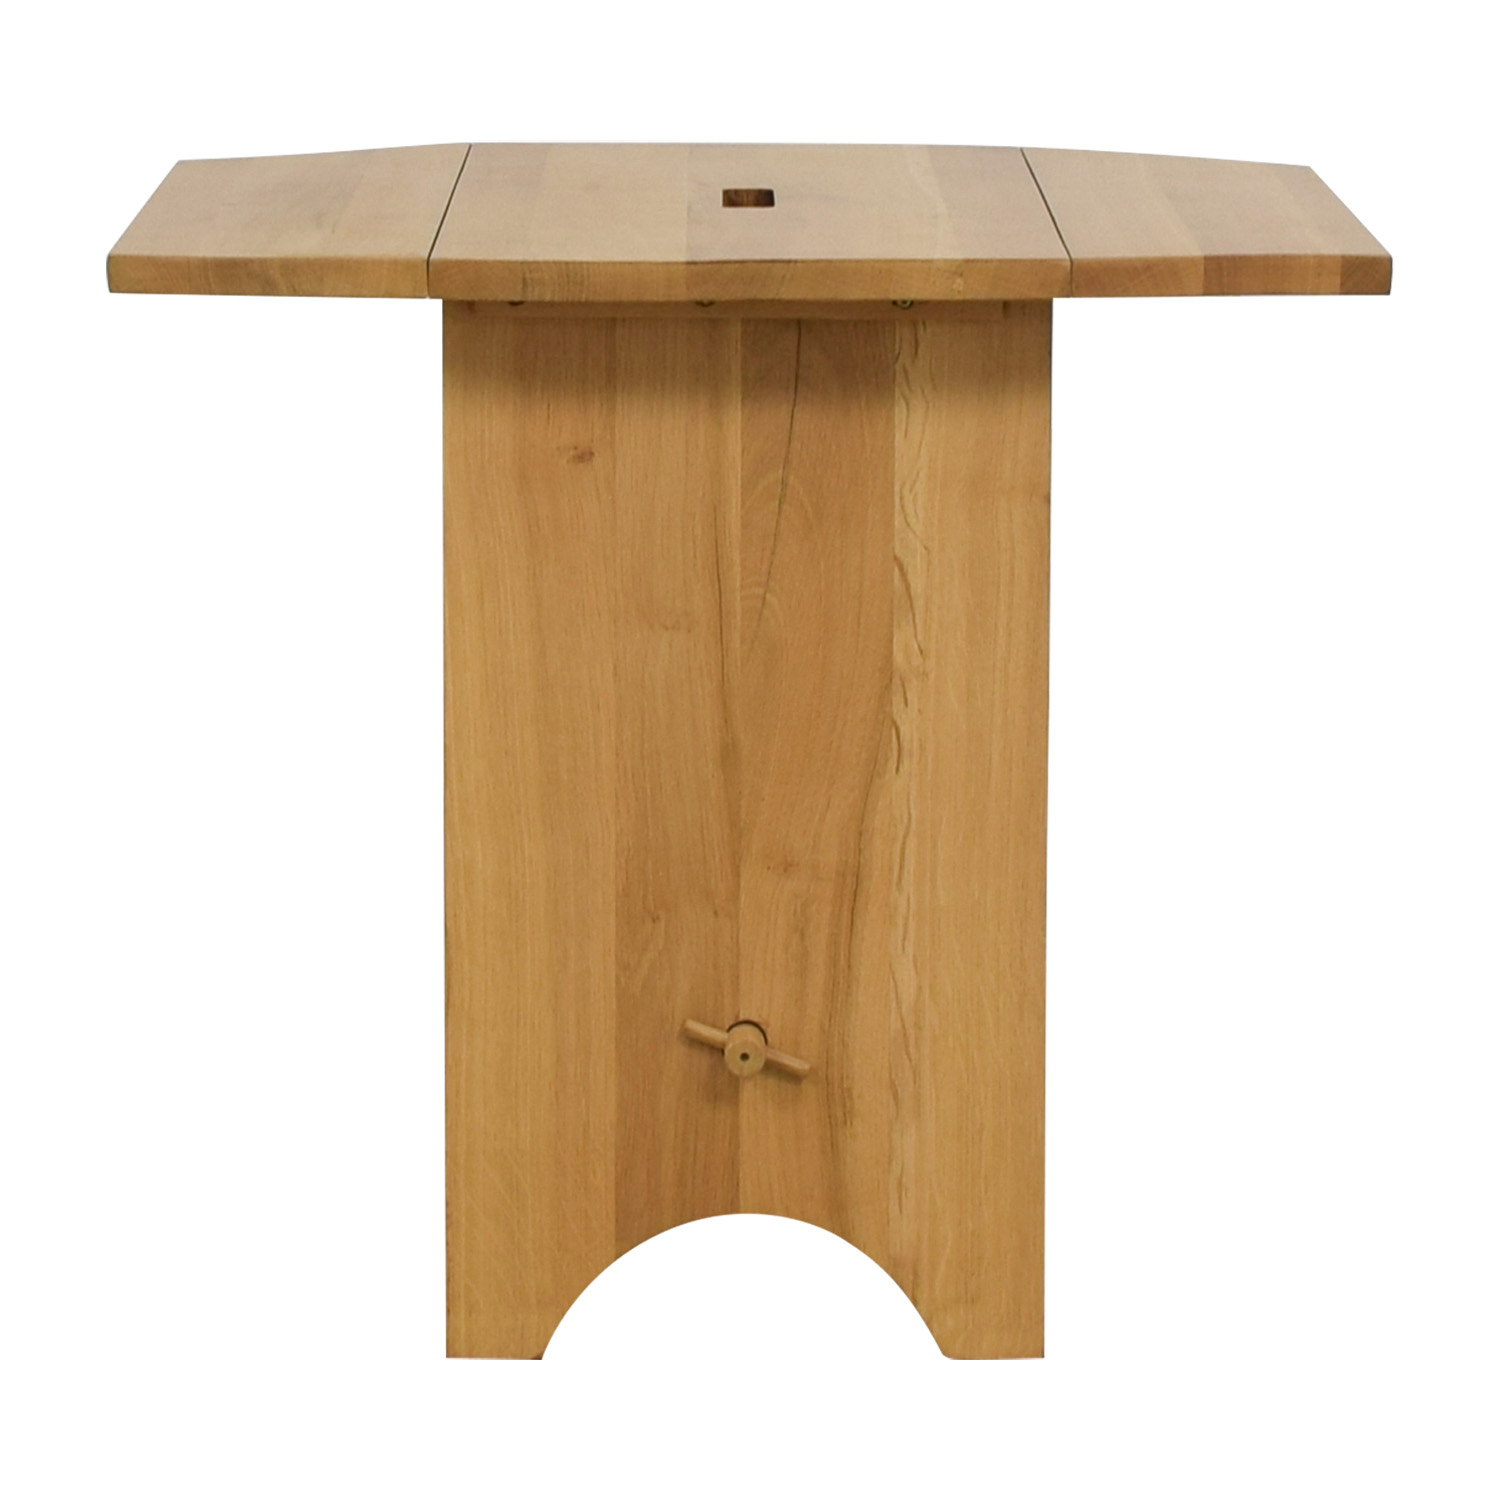 Manor and Mews Manor and Mews Oak Drop Leaf Table on sale